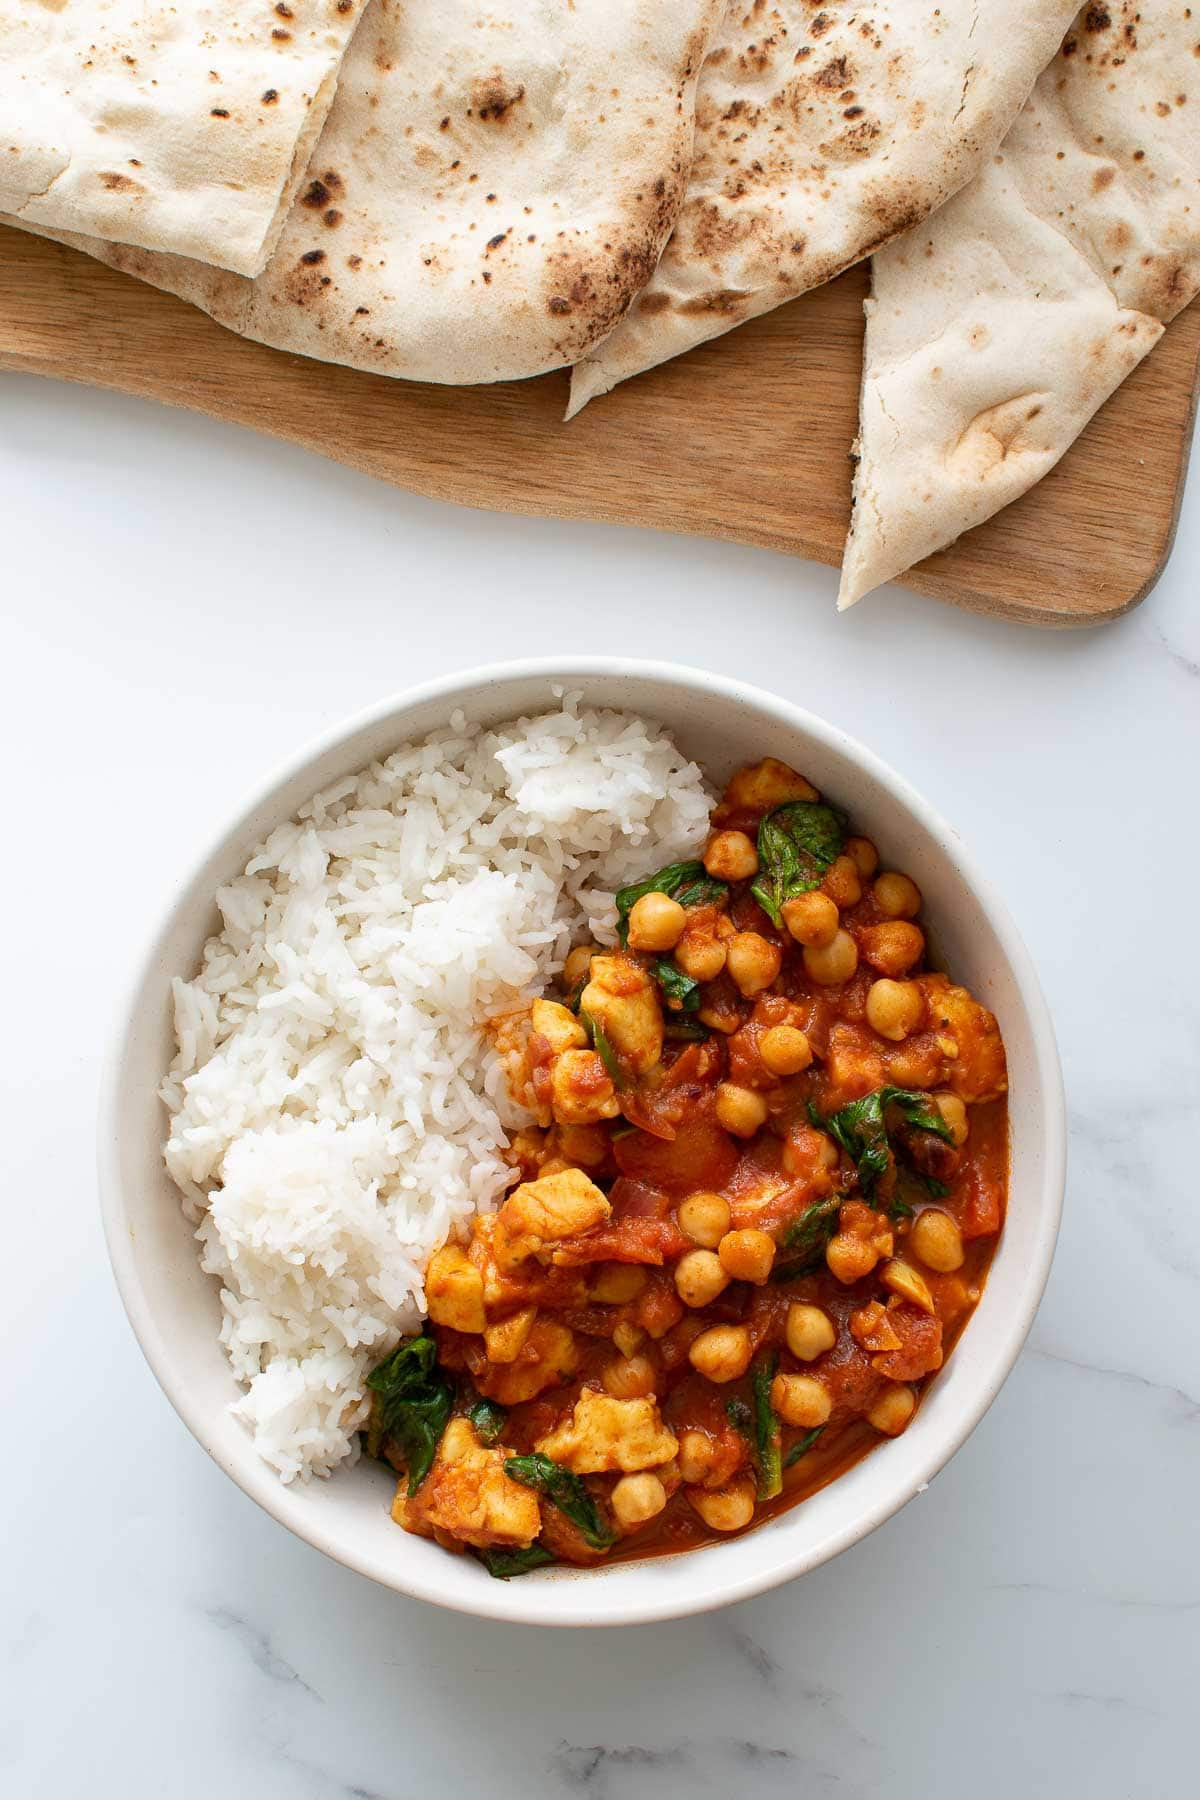 Chickpea, halloumi and spinach curry with rice.